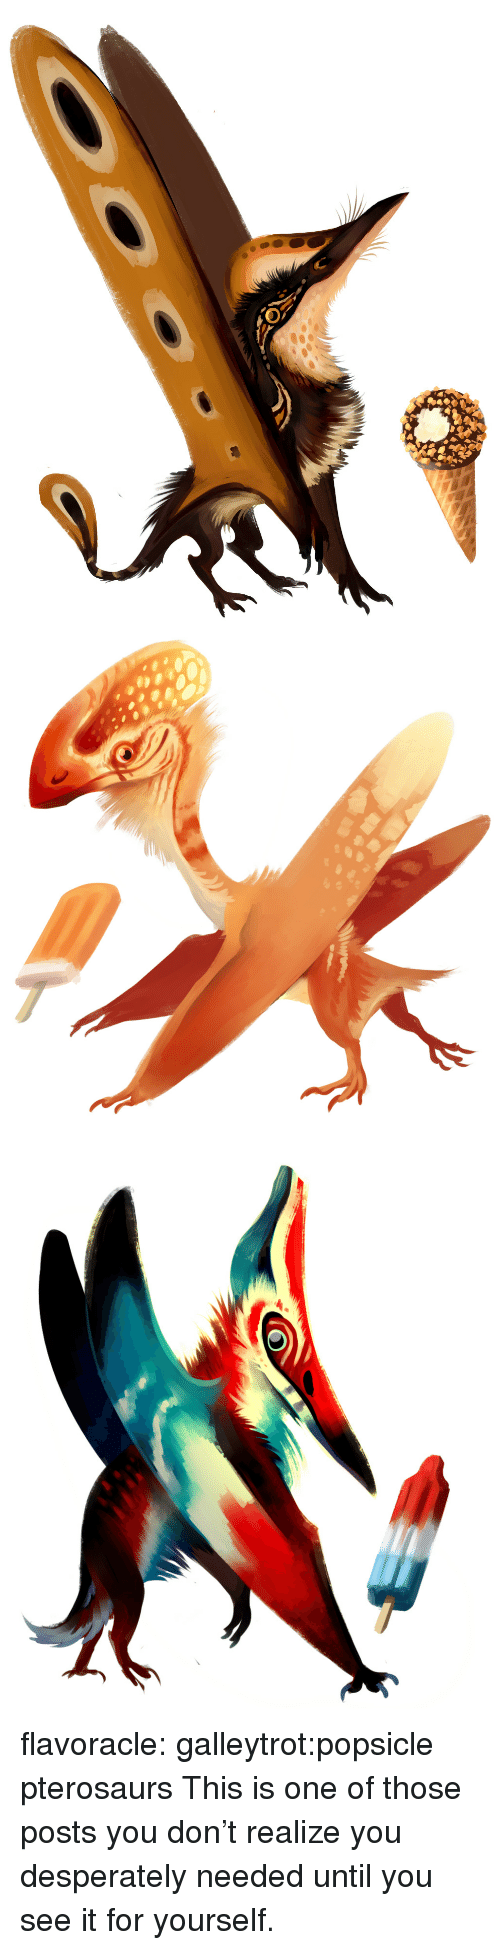 popsicle: flavoracle:  galleytrot:popsicle pterosaurs  This is one of those posts you don't realize you desperately needed until you see it for yourself.